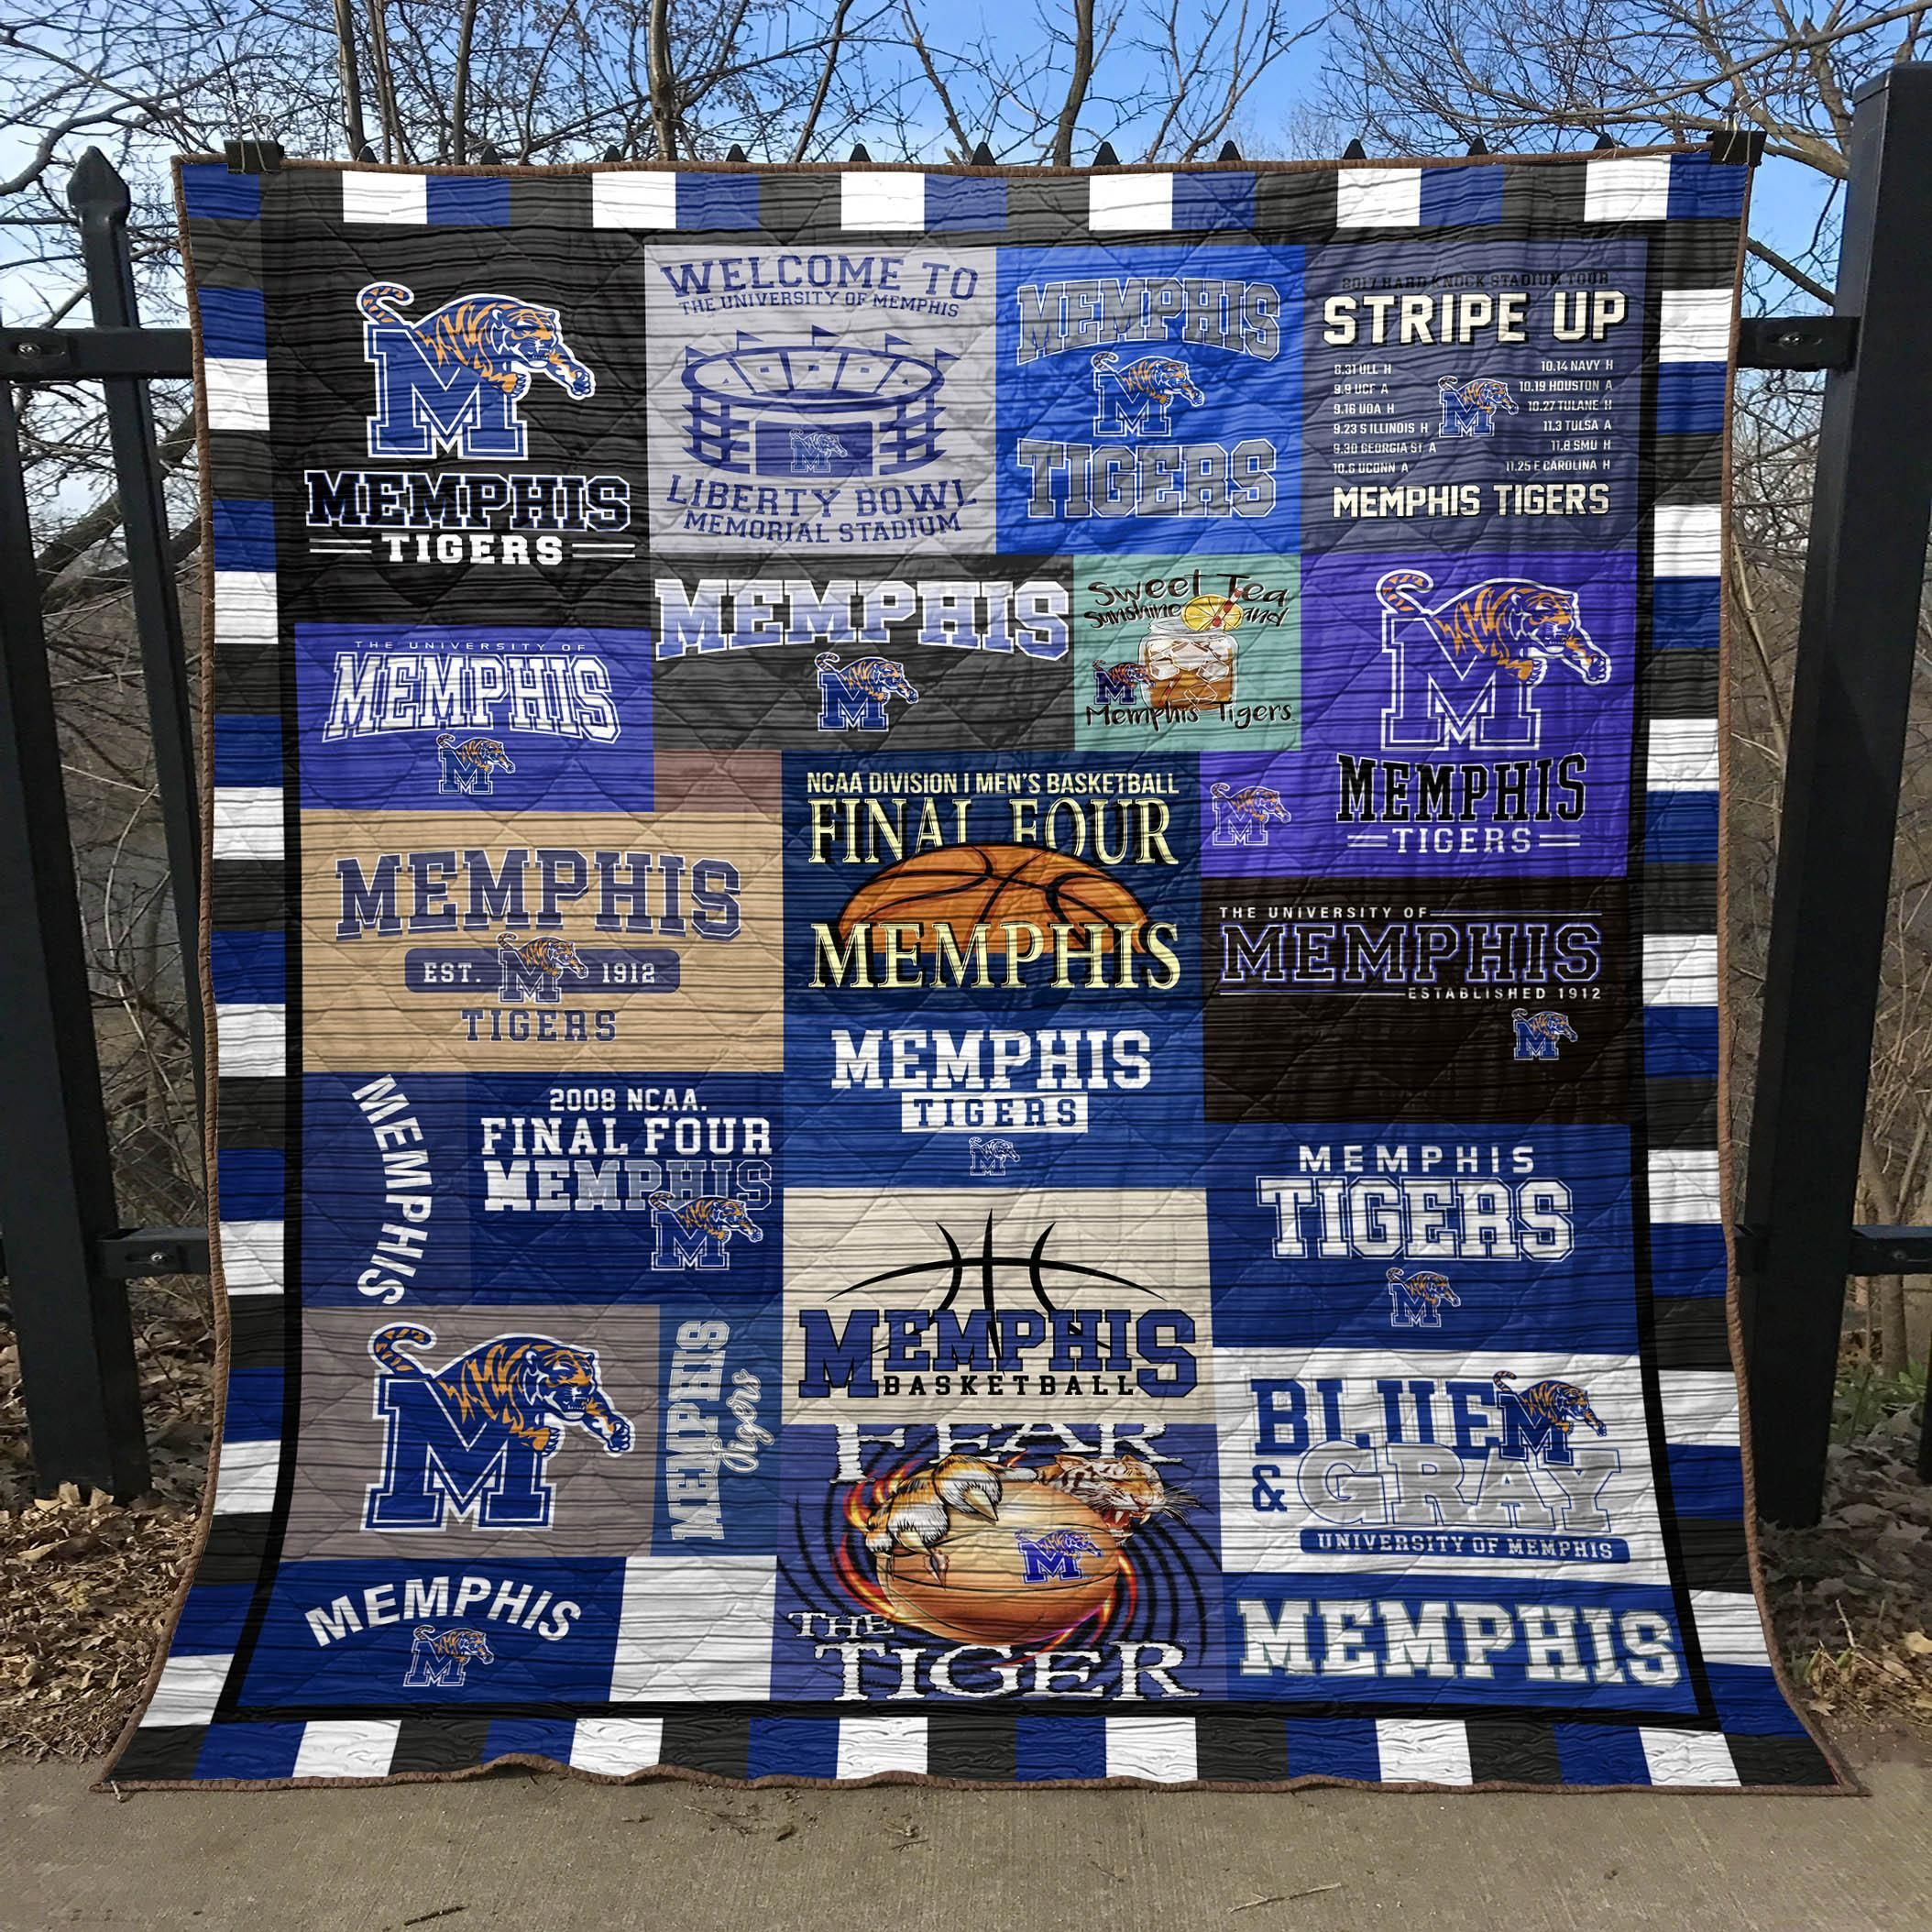 Memphis Tigers To Liberty Bowl Memorial Stadium